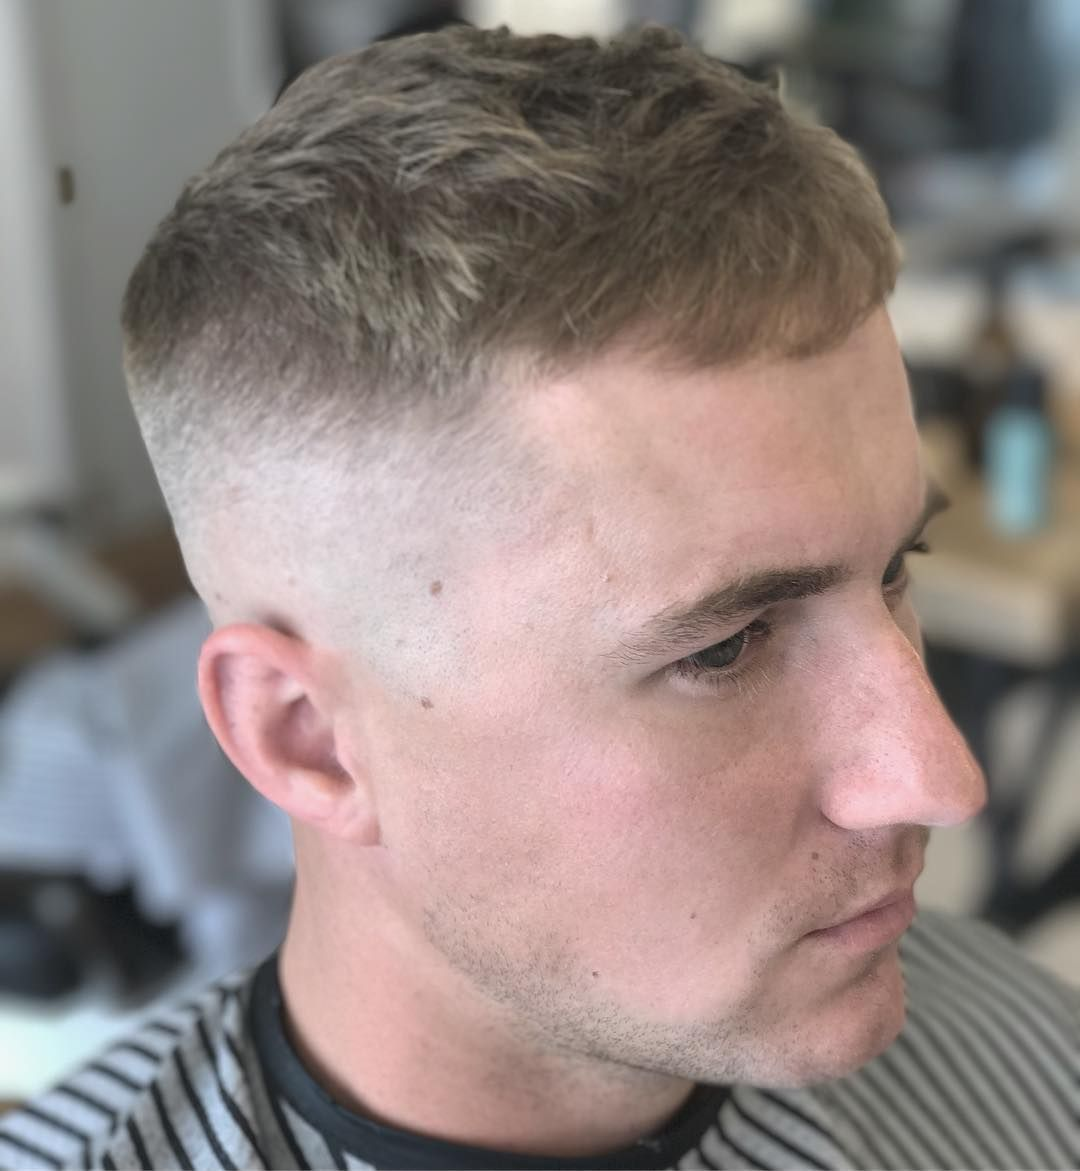 European Haircut Trends For Men Super Cool Styles Haircuts For Balding Men Fine Hair Men Haircuts For Men